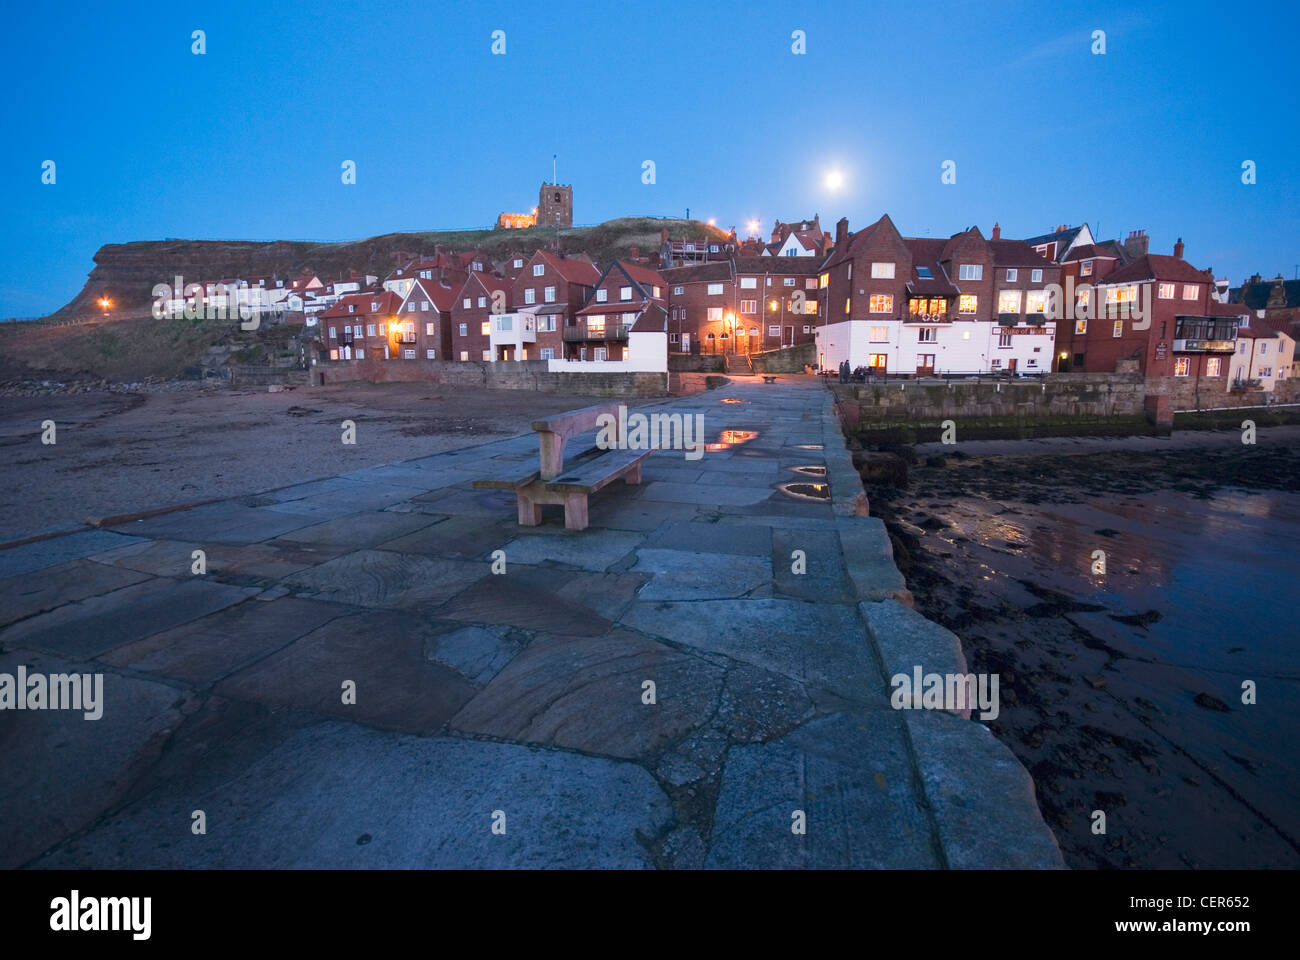 An evening view towards the old town of Whitby from the waterfront. - Stock Image